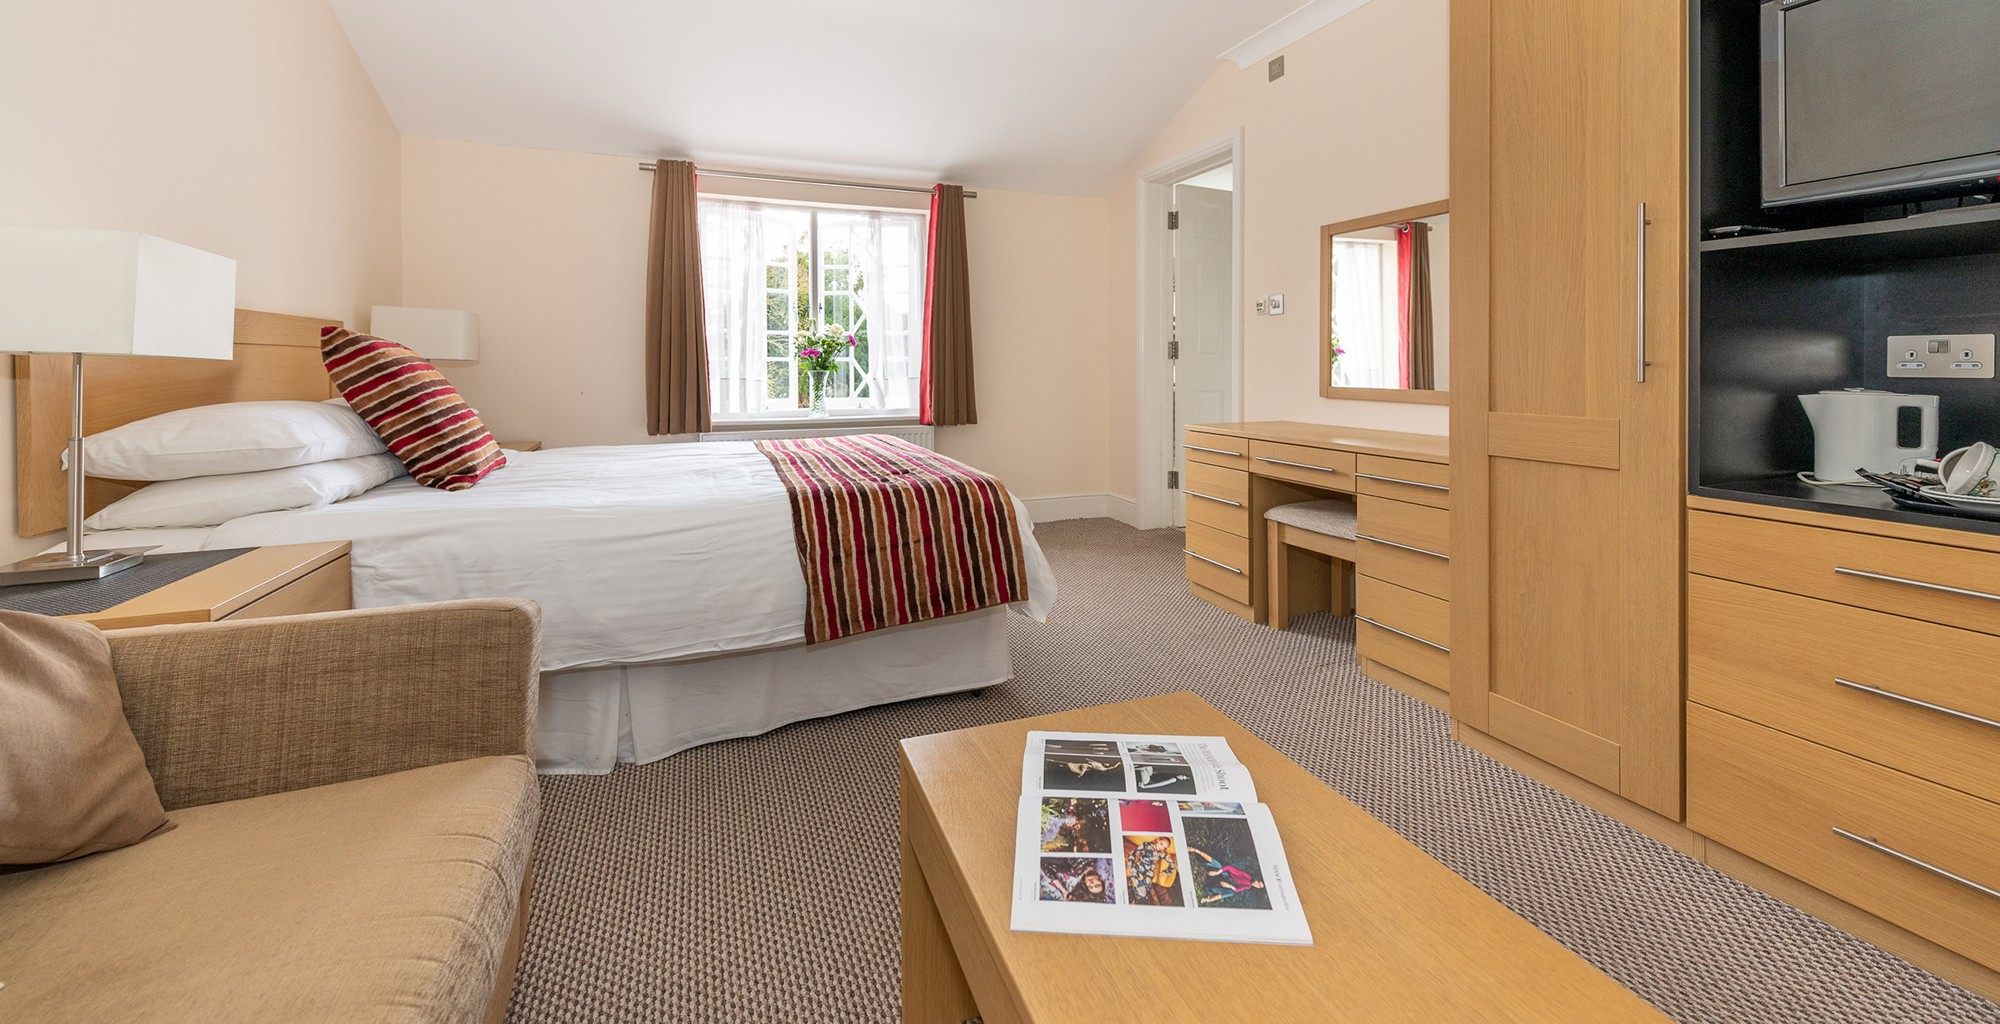 Rooms | Hotel in Sidmouth | Family Friendly Hotel | Royal Glen